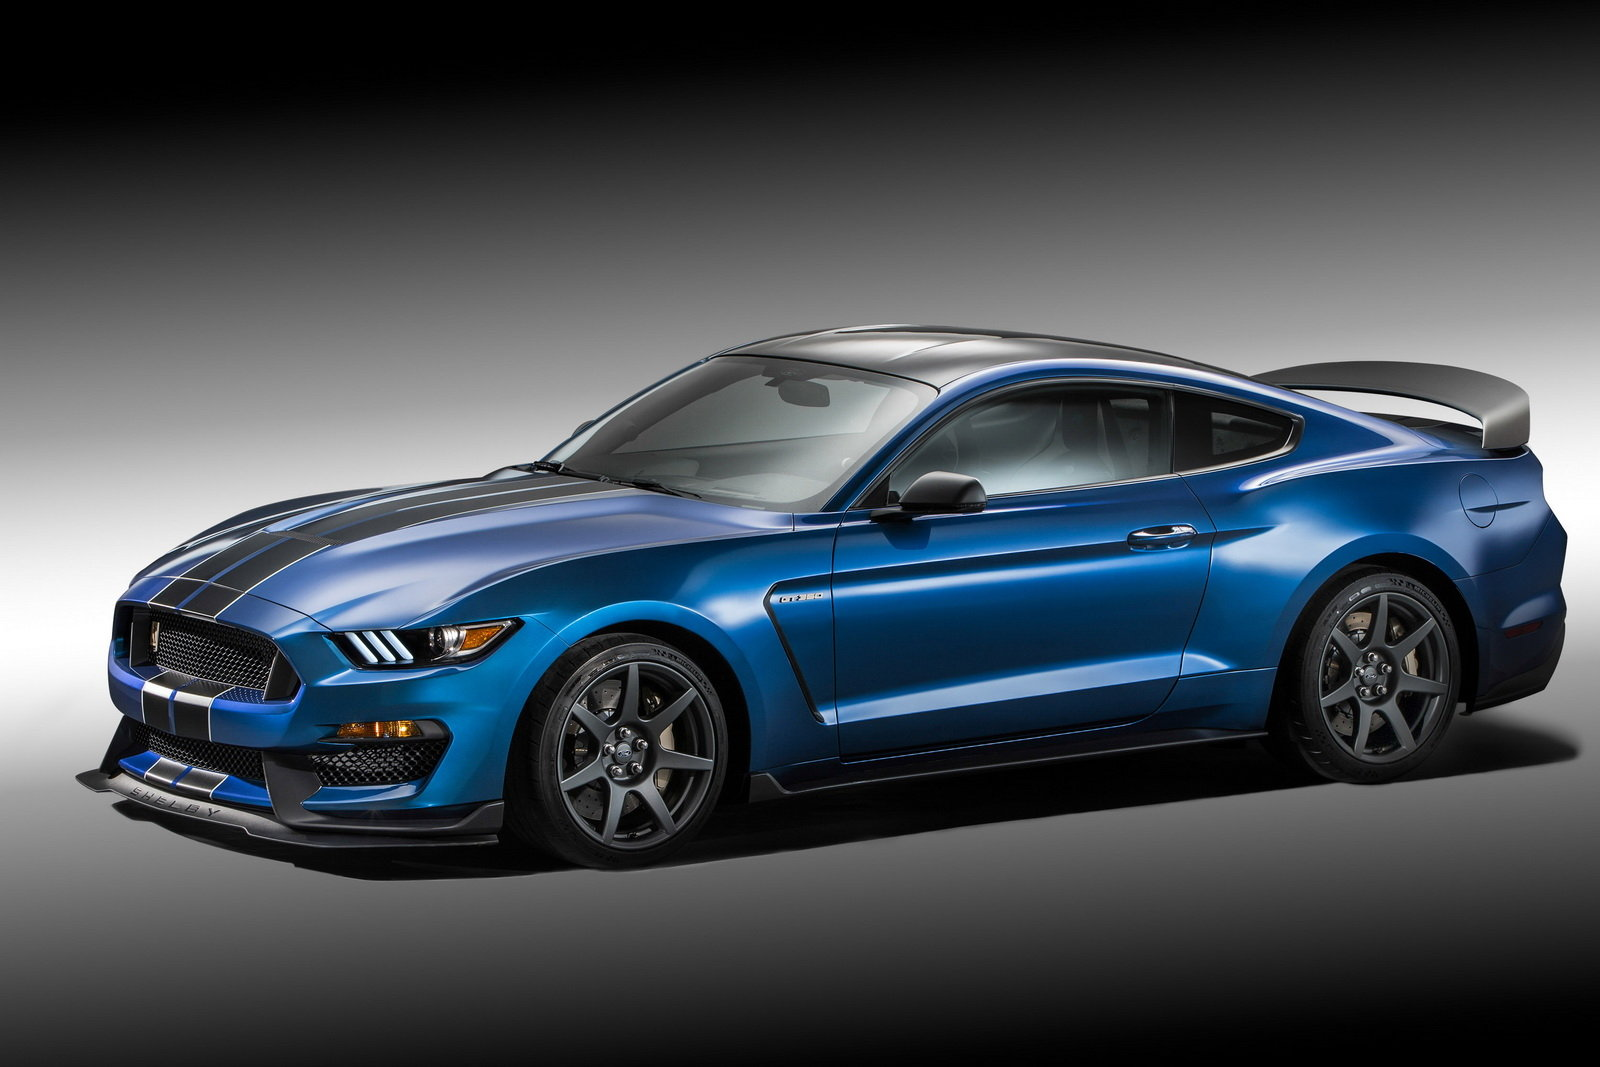 2016 Ford Mustang Shelby Gt350r Exterior Profile (Photo 28 of 47)